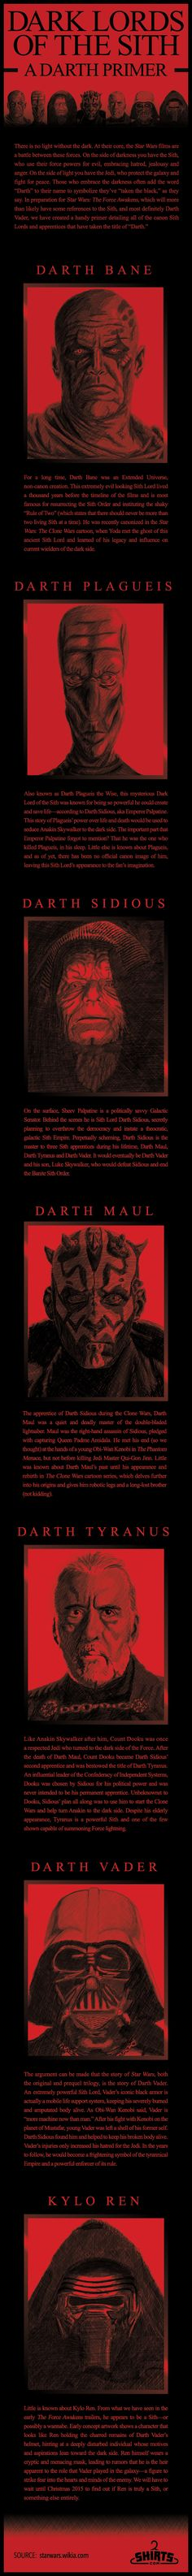 Dark Lords Of The Sith: A Darth Primer [INFOGRAPHIC] | Shirts.com - #starwars #episode7 #theforceawakens